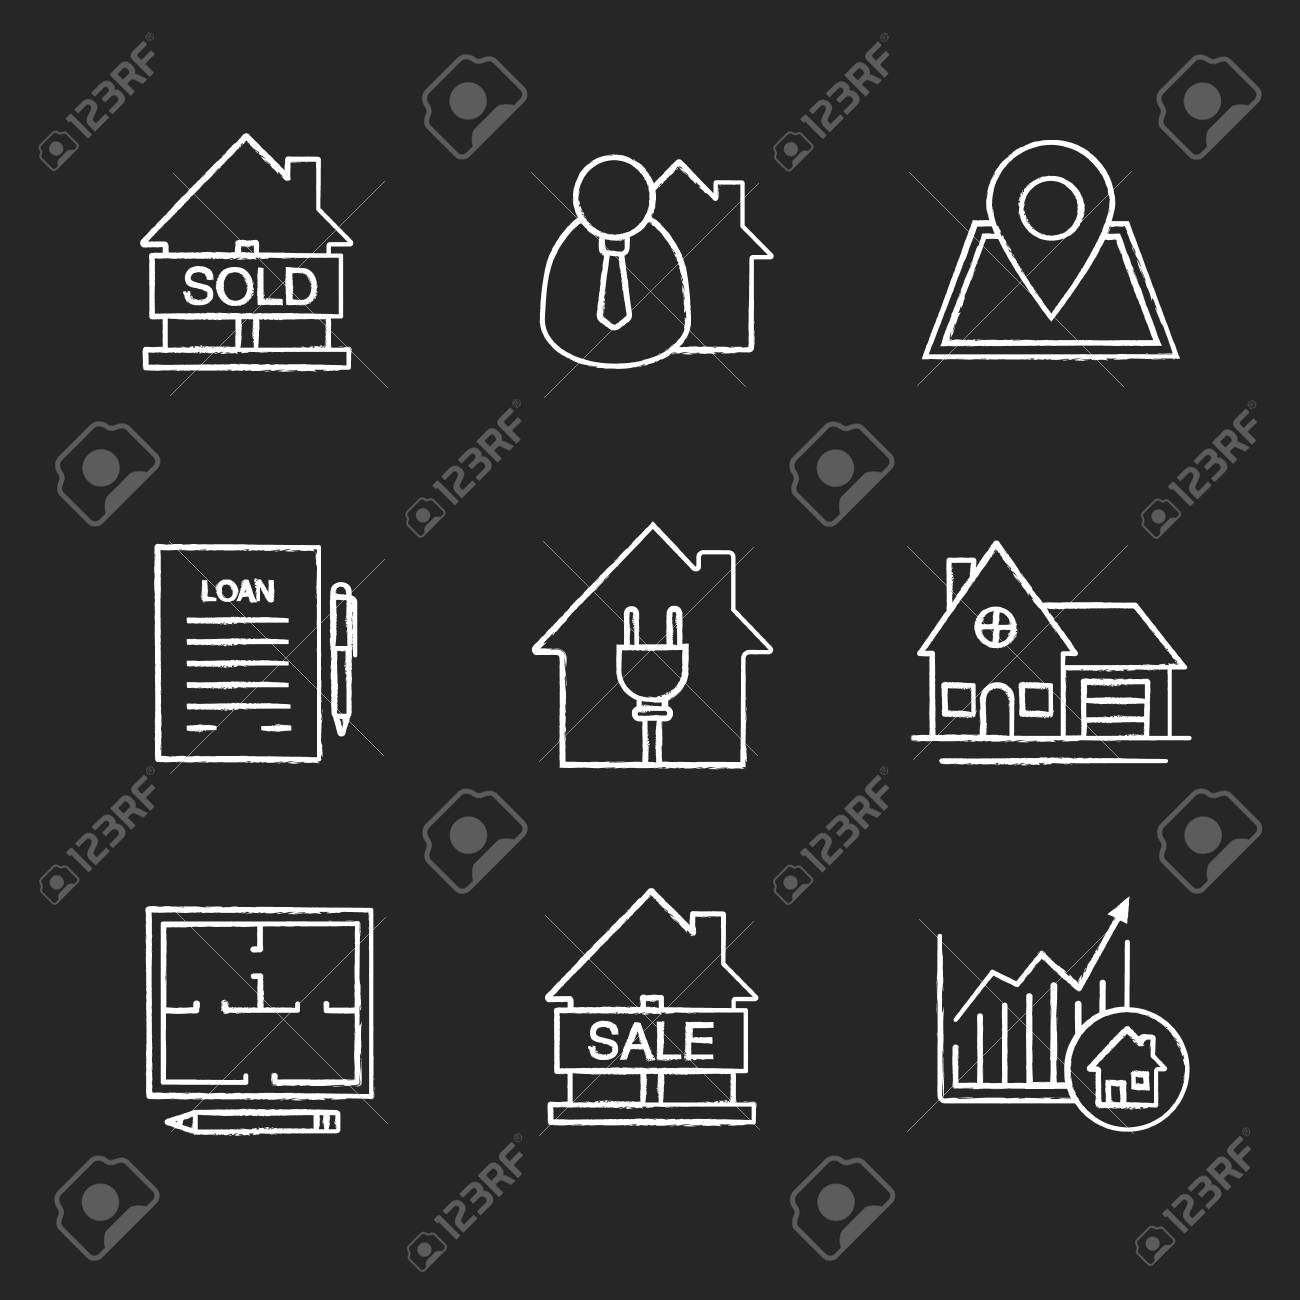 Real Estate Market Chalk Icons Set Sold House Broker Building